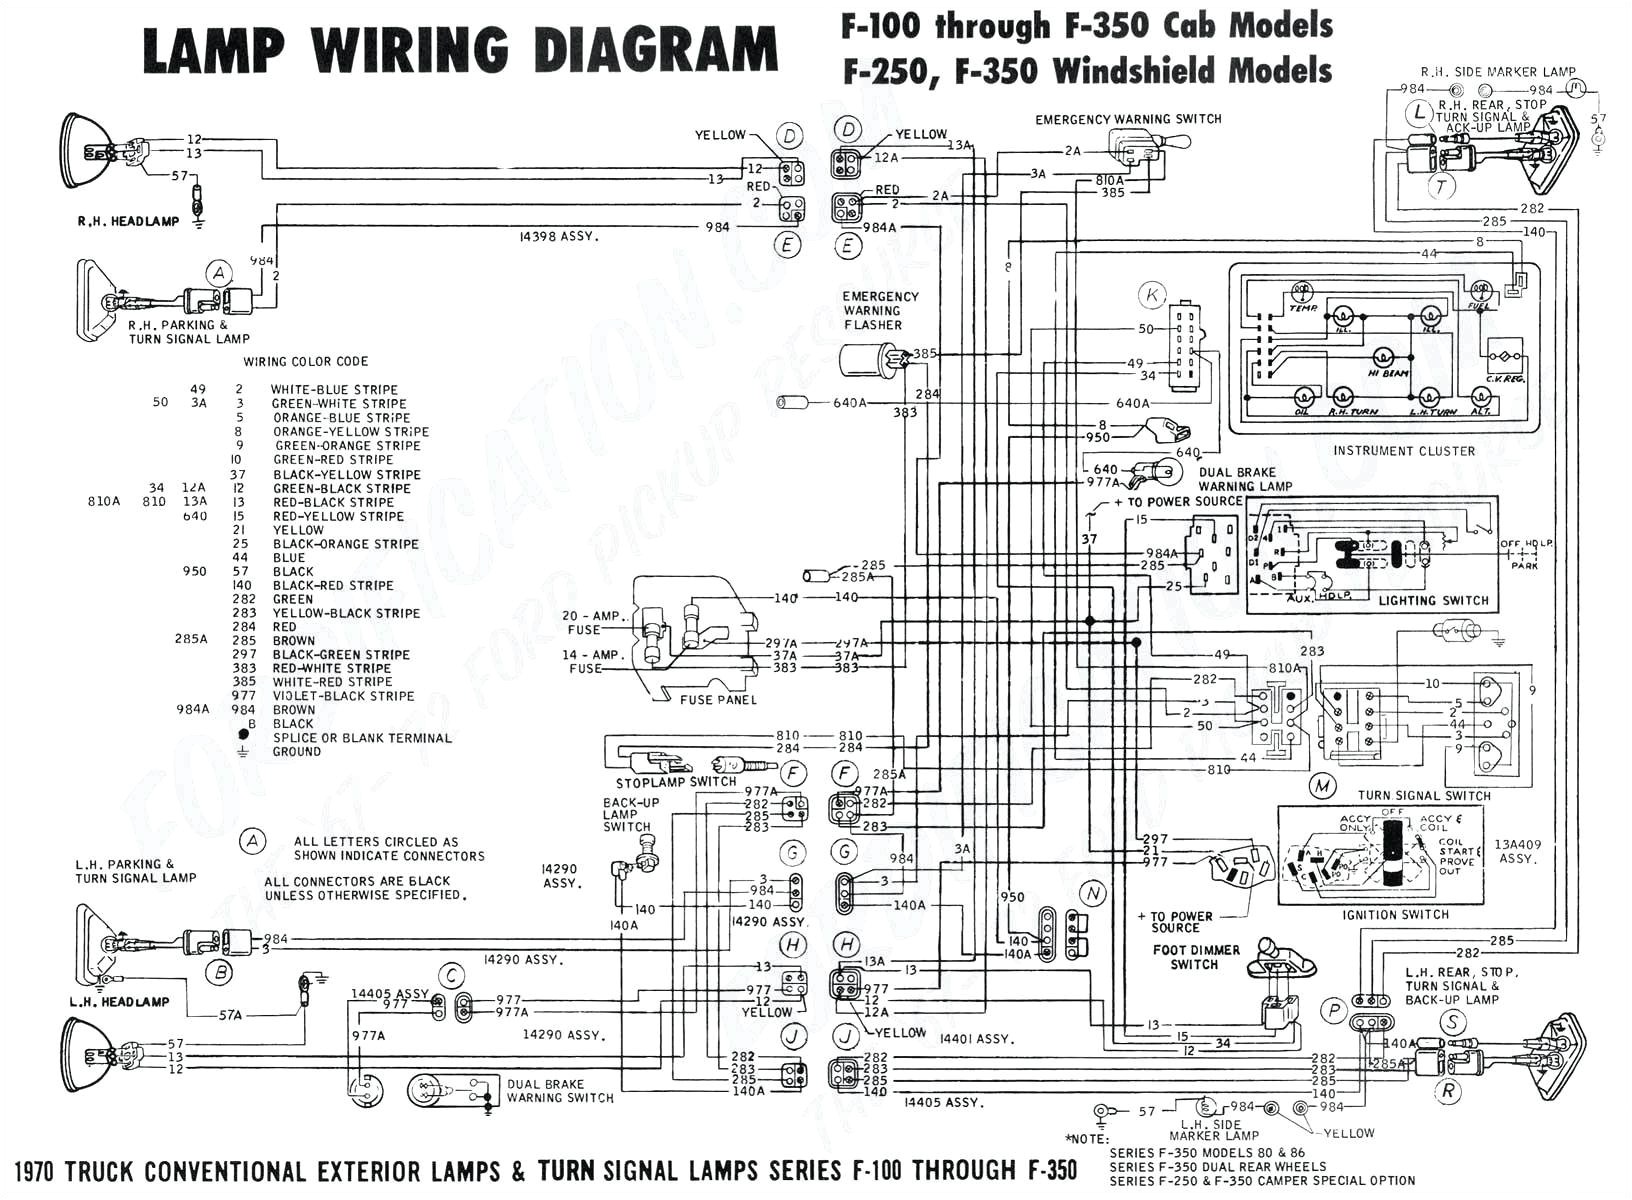 2005 ford f150 trailer wiring diagram free wiring diagram jpg